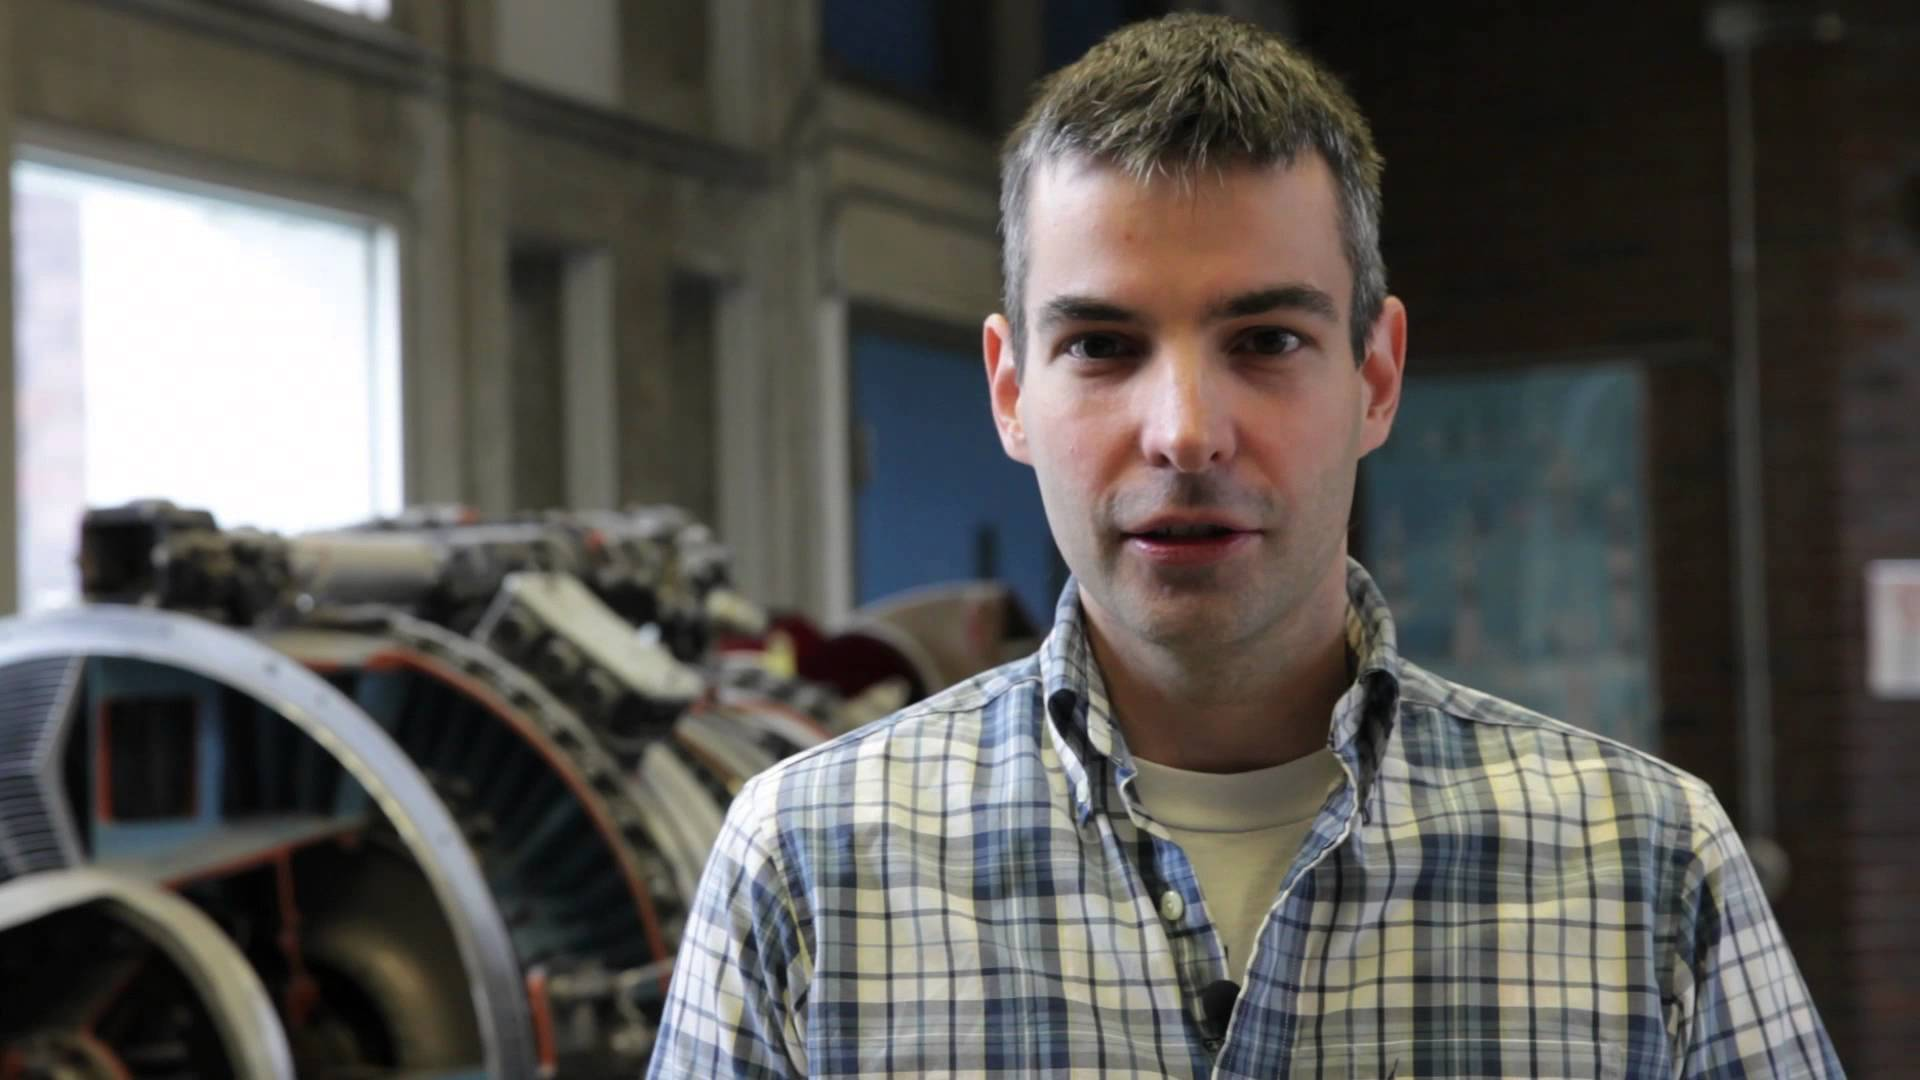 Thumbnail for: Carleton's grad programs in Aerospace Engineering